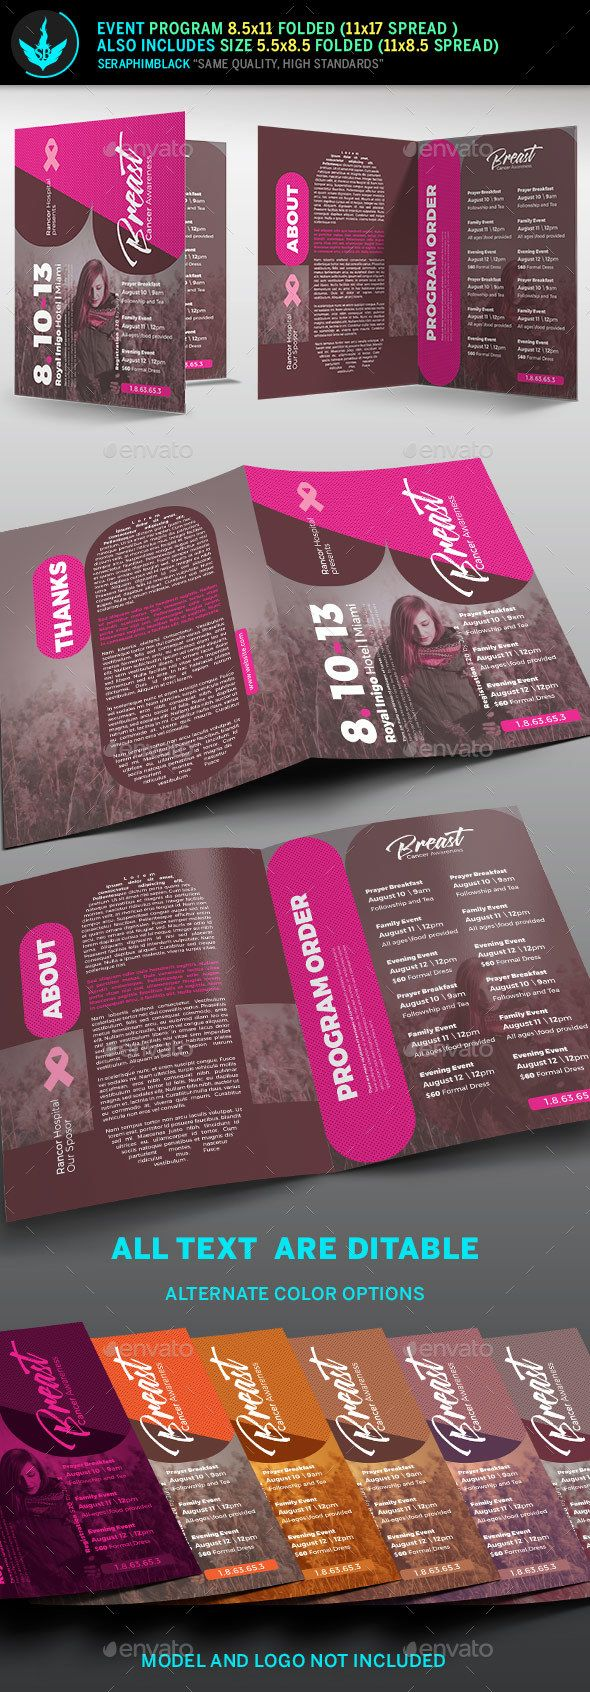 Cancer Awareness Event Program Template  Program Template Psd